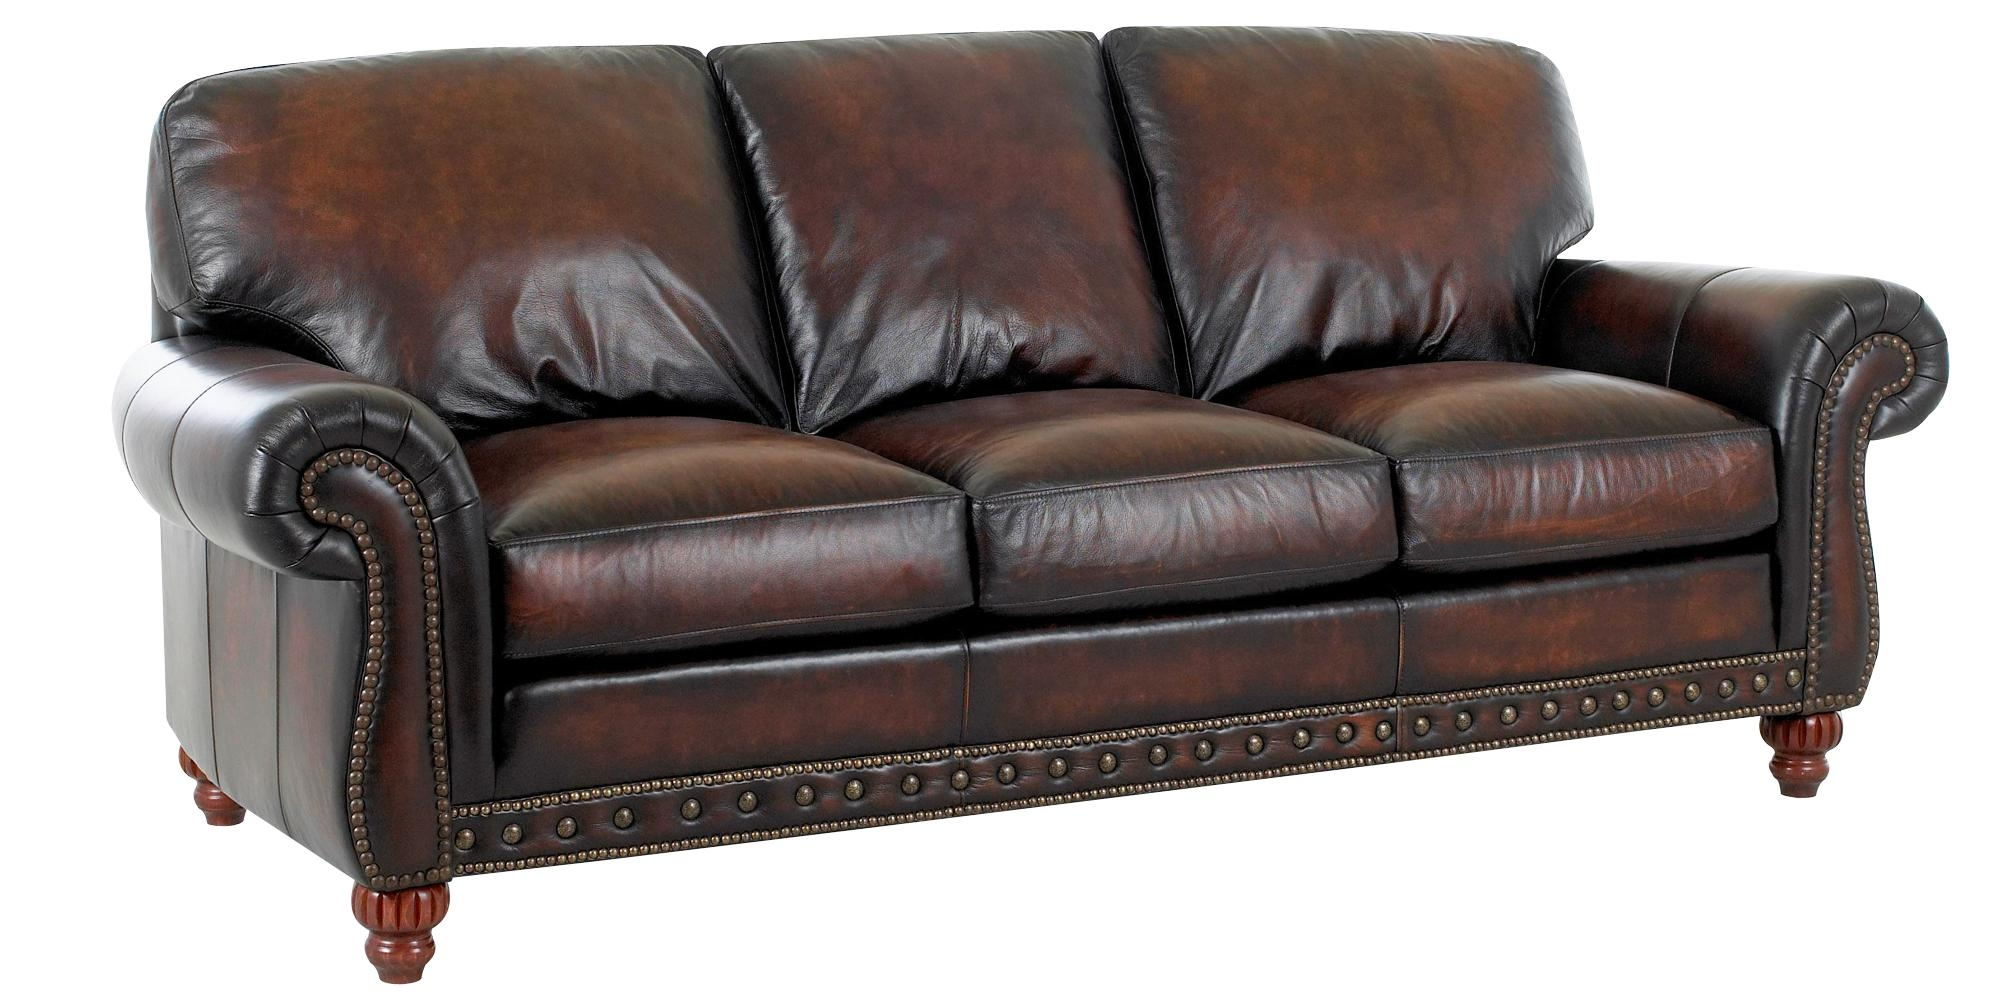 Traditional European Old World Leather Sofa Set | Club Furniture In European  Leather Sofas (Photo